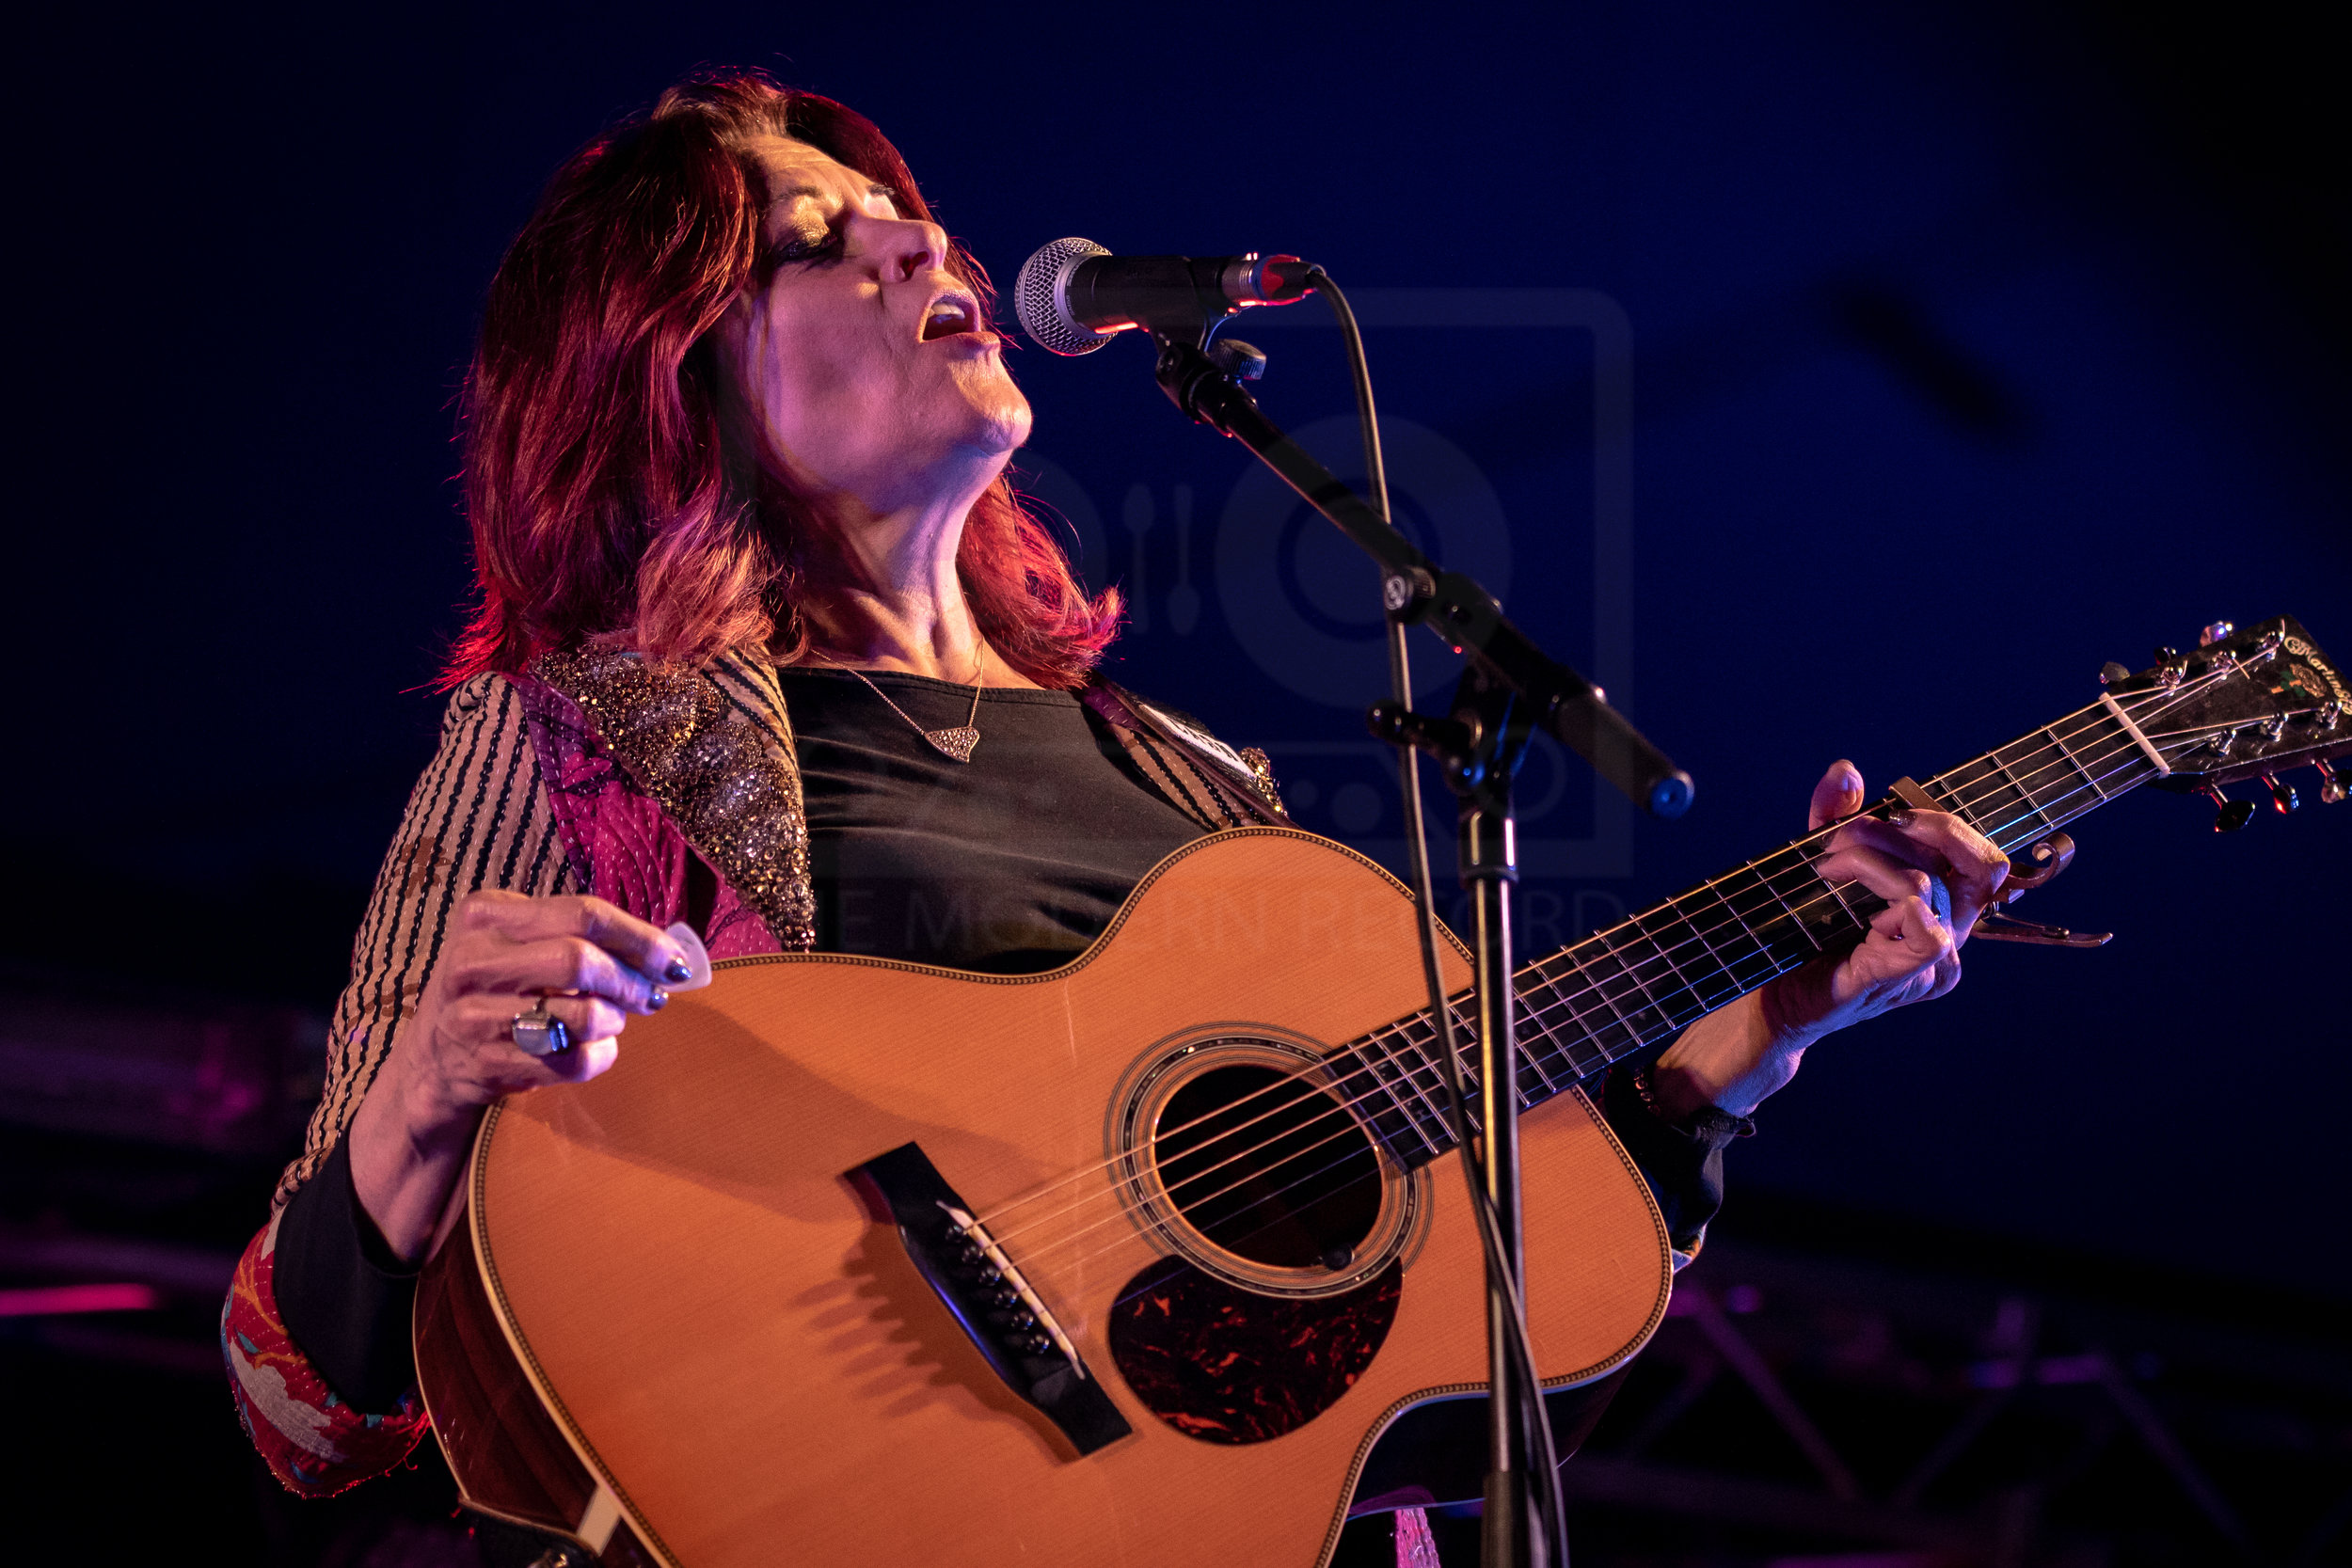 ROSANNE CASH PERFORMING AT BELLADRUM TARTAN HEART FESTIVAL 2018 - 04.08.2018  PICTURE BY: KENDALL WILSON PHOTOGRAPHY